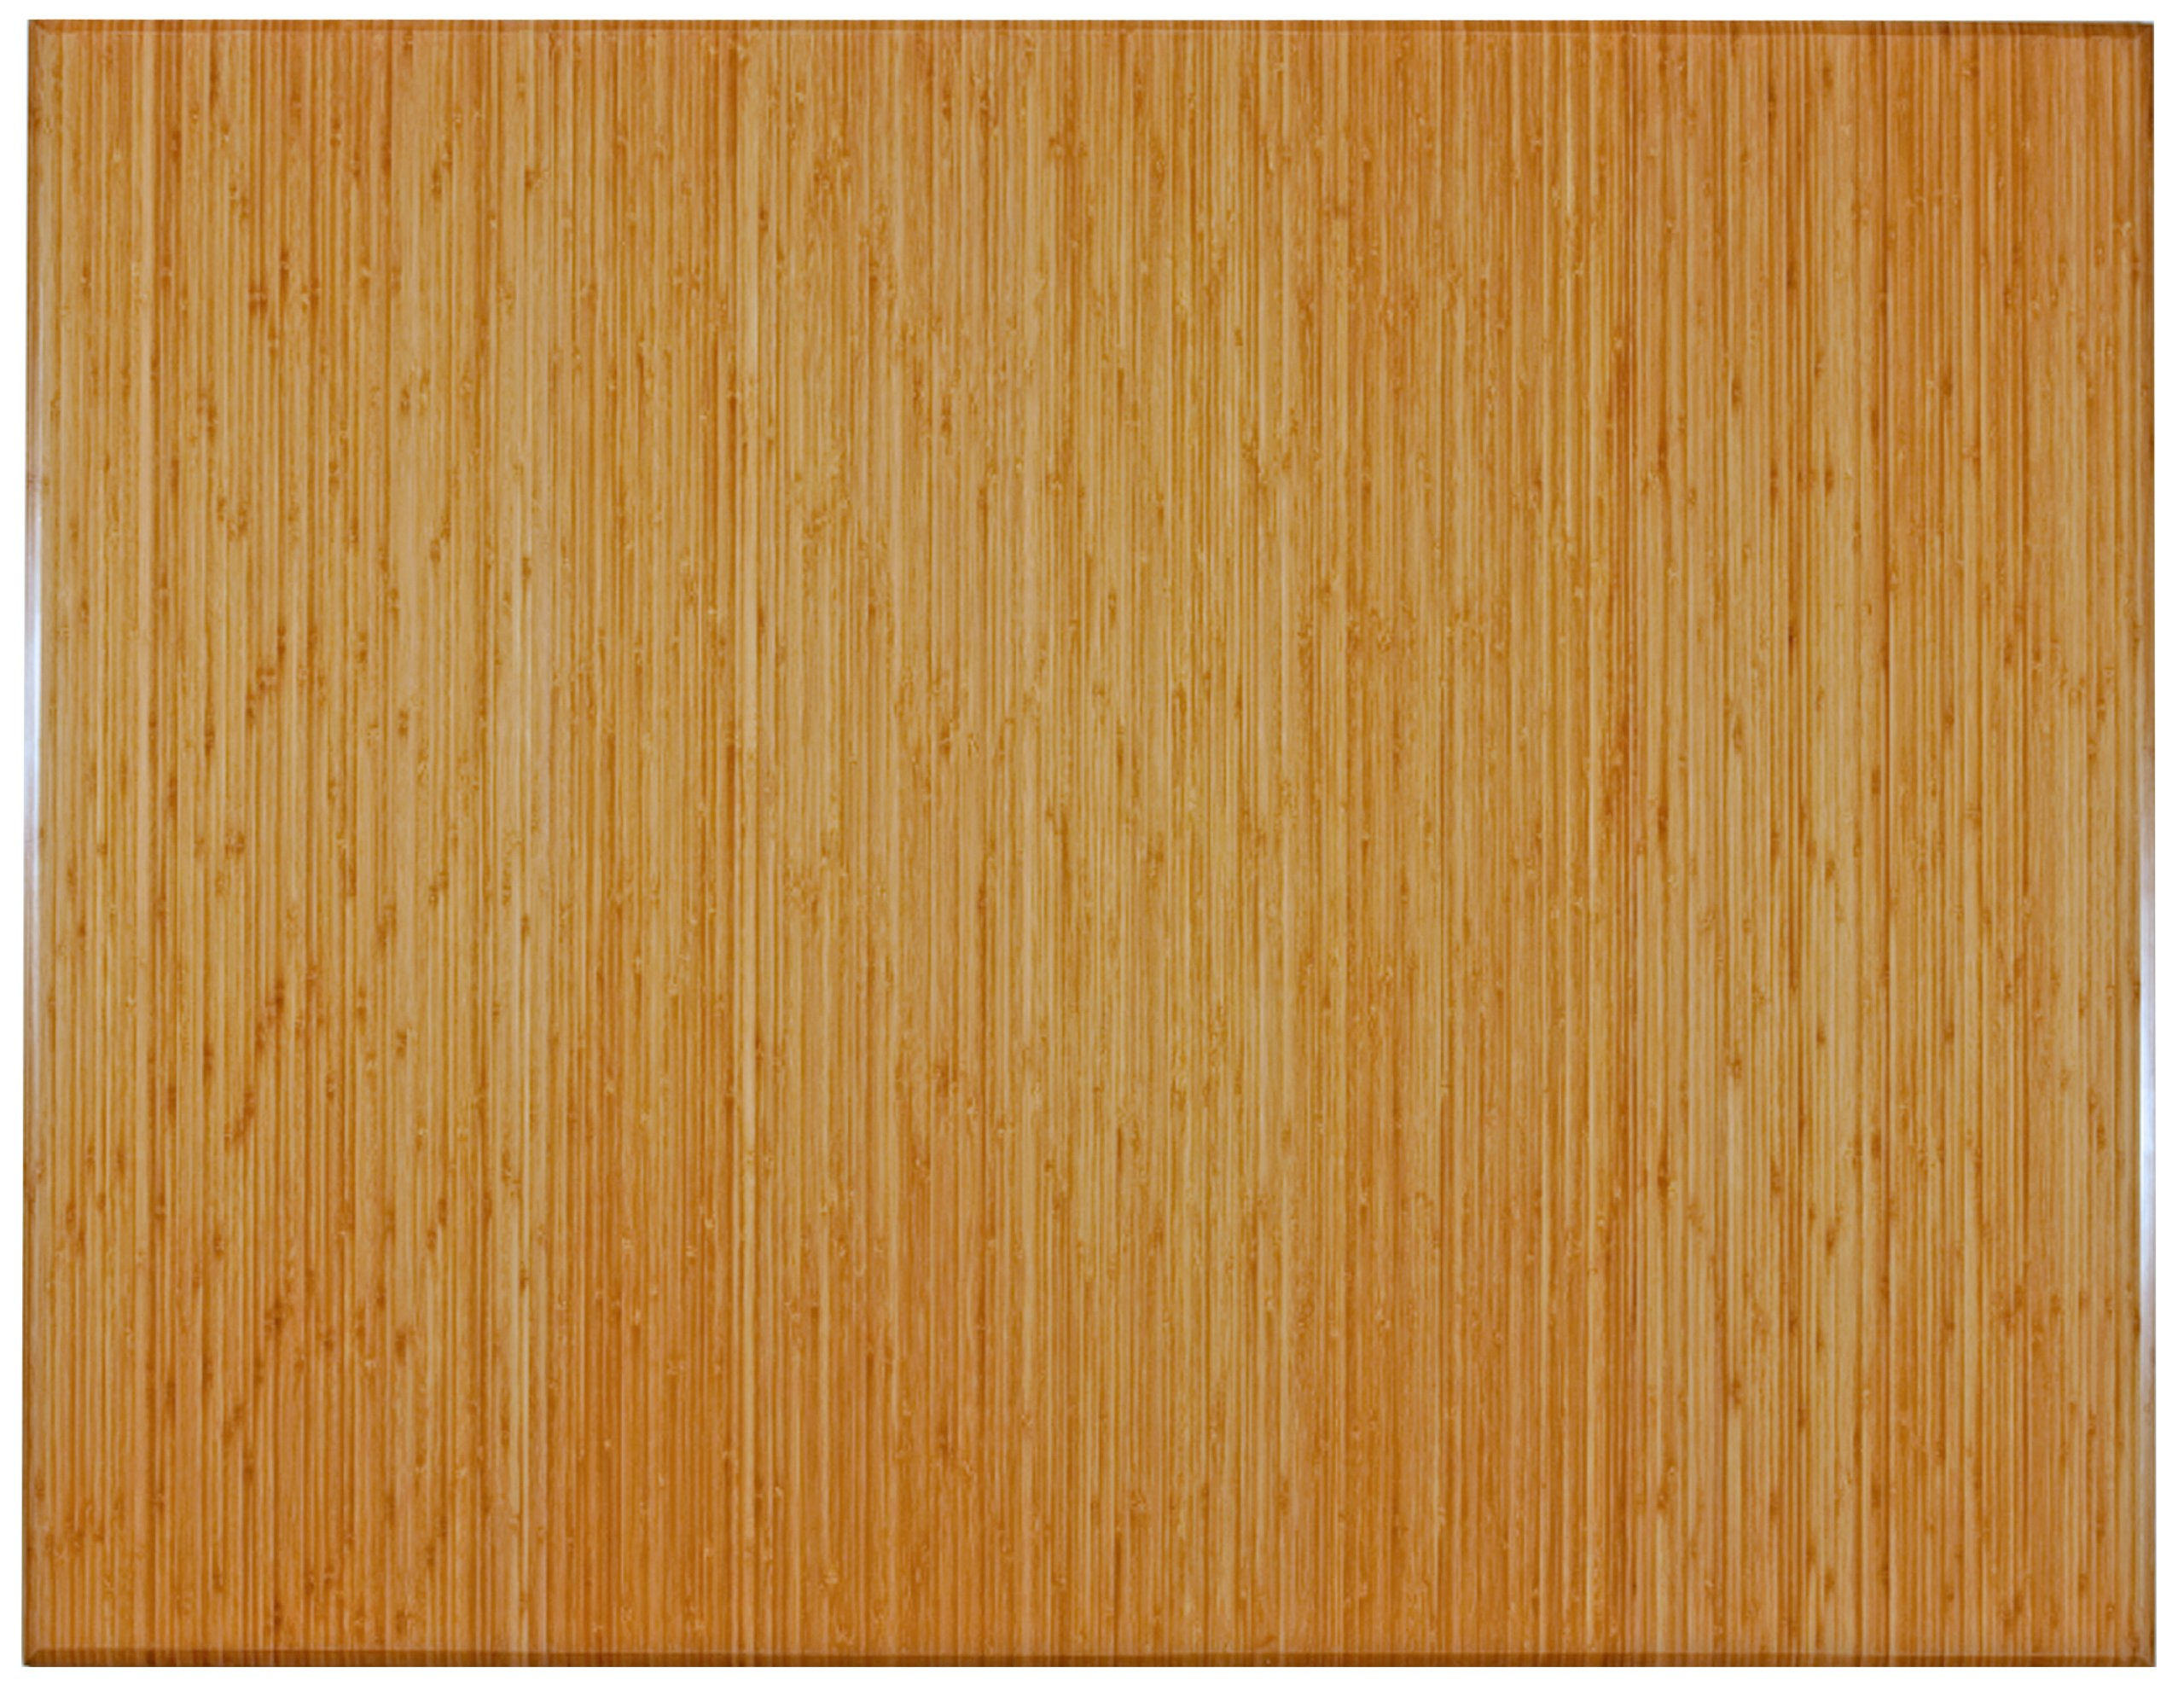 Anji Mountain AMB0500-1008 Trifold Bamboo Chair Mat Without Lip, Natural, 47 x 60, 12mm Thick by Anji Mountain